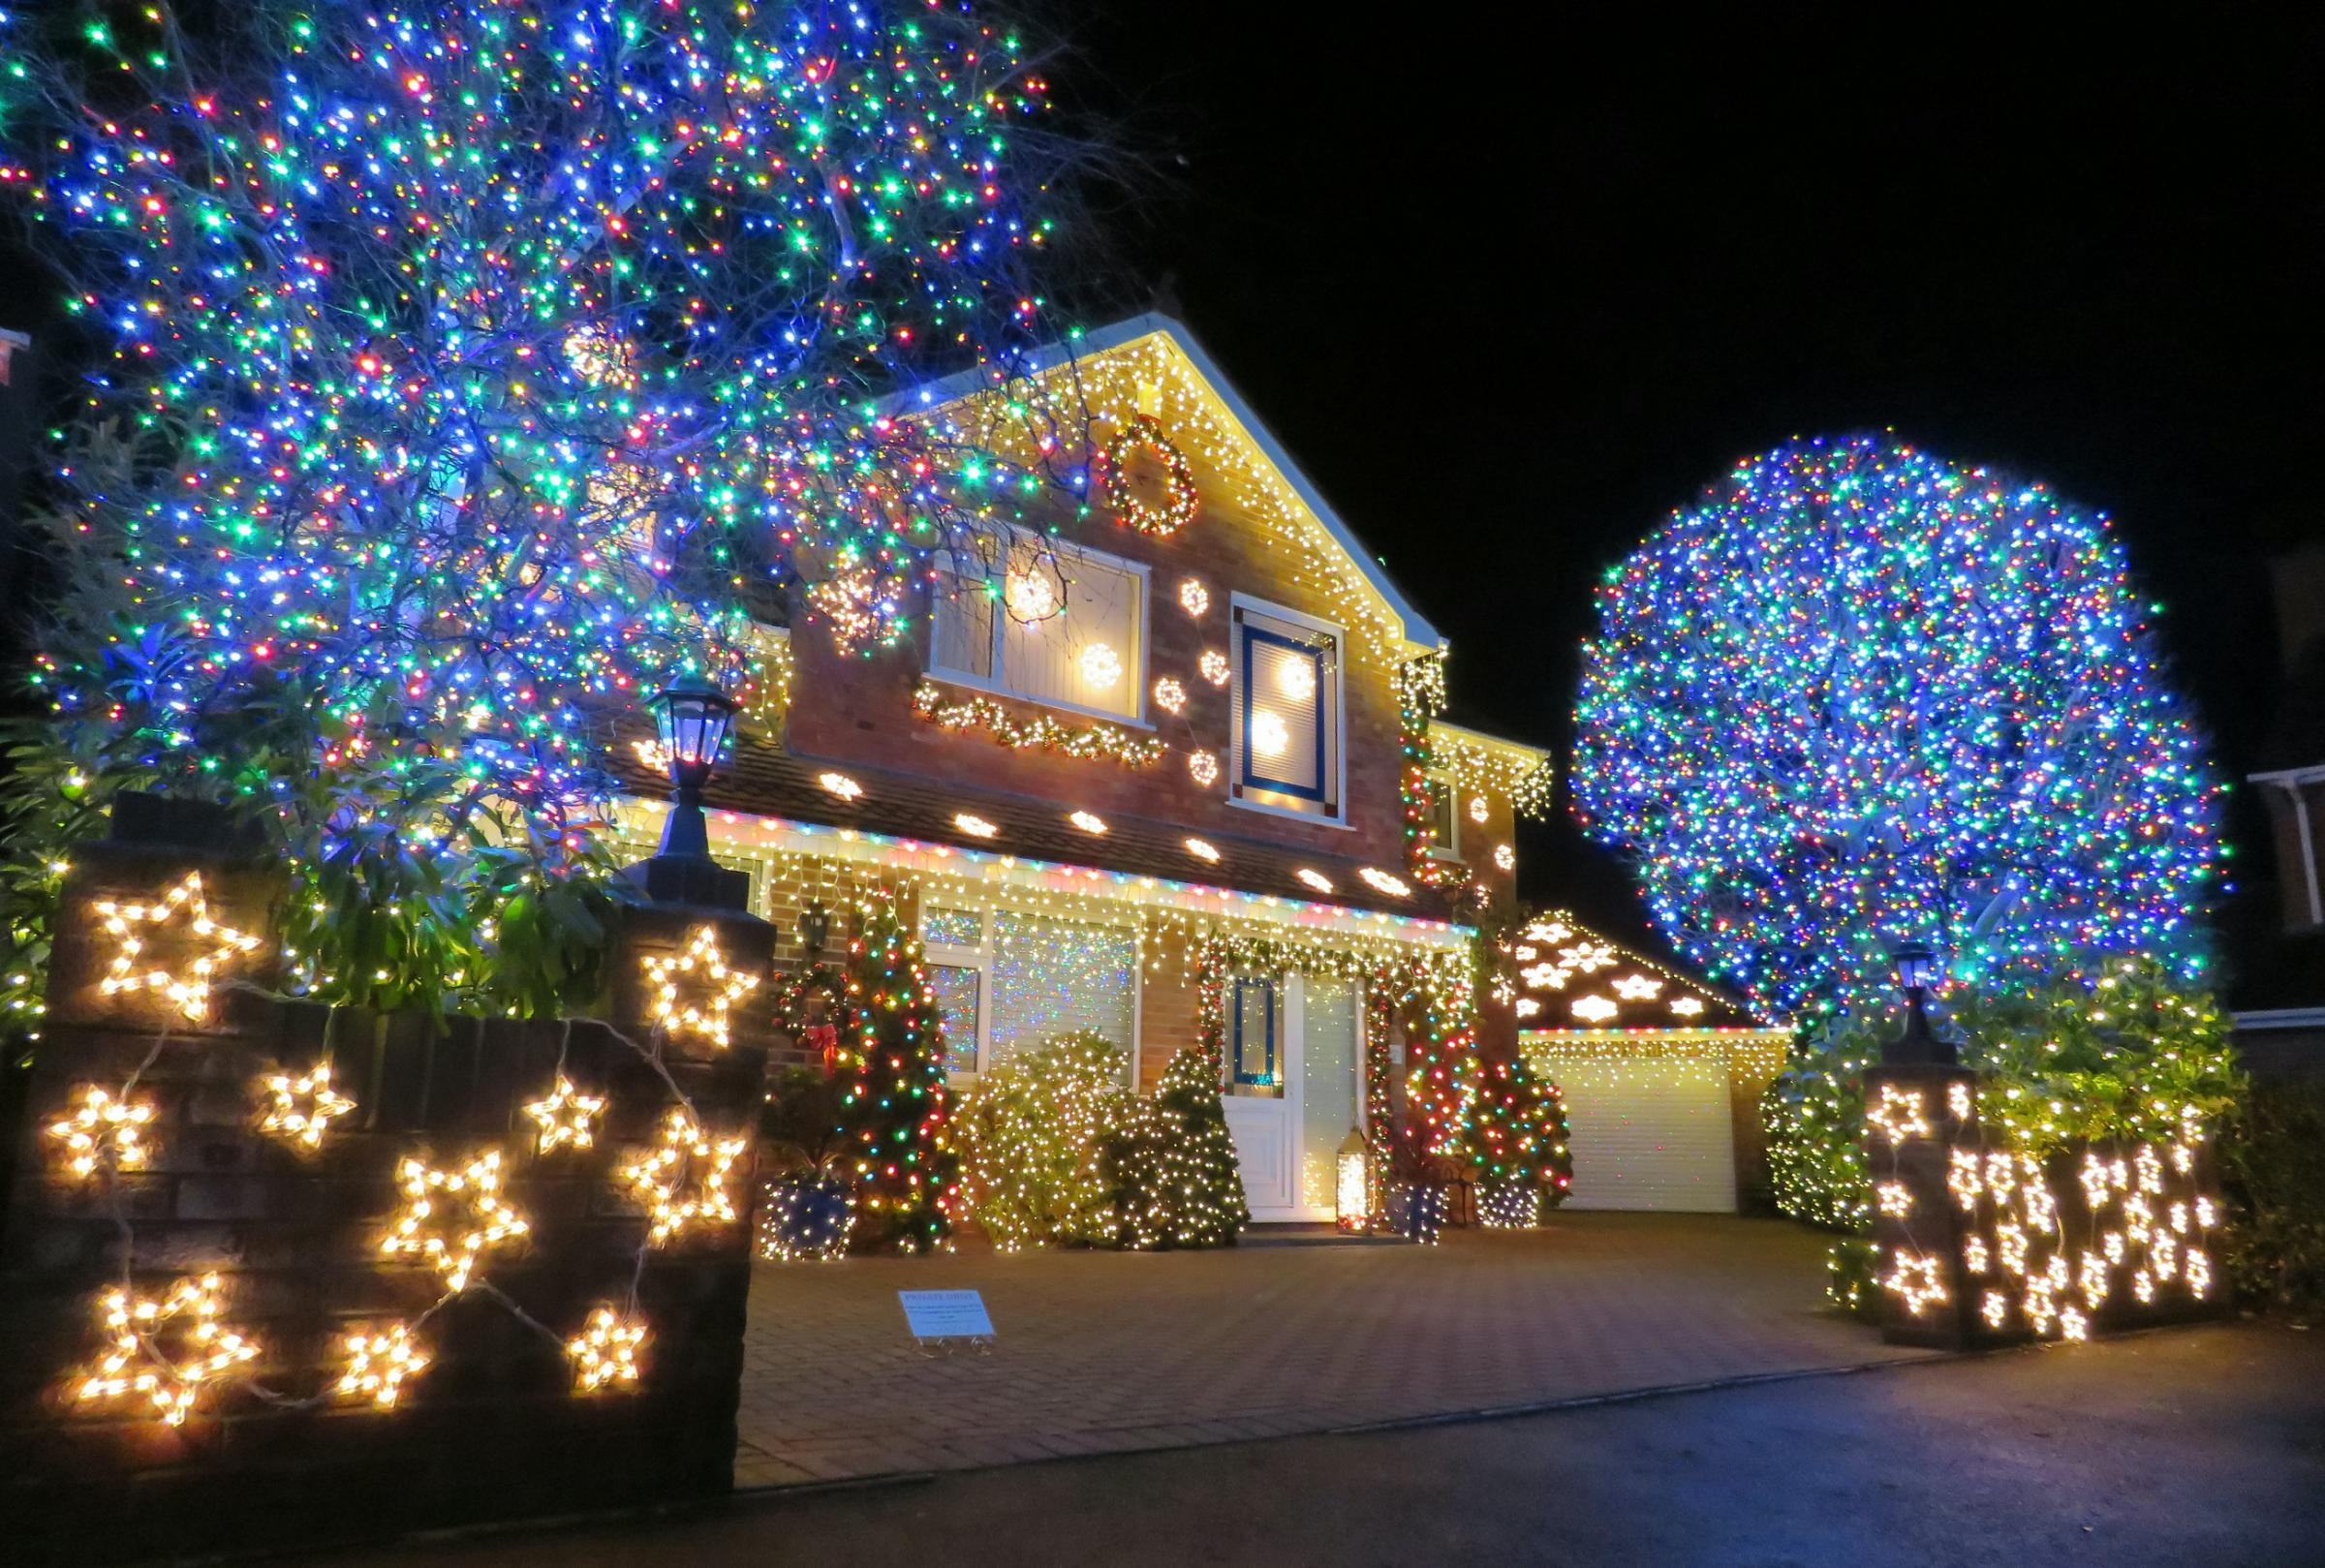 DECORATIONS: Are you getting your home ready for Christmas?